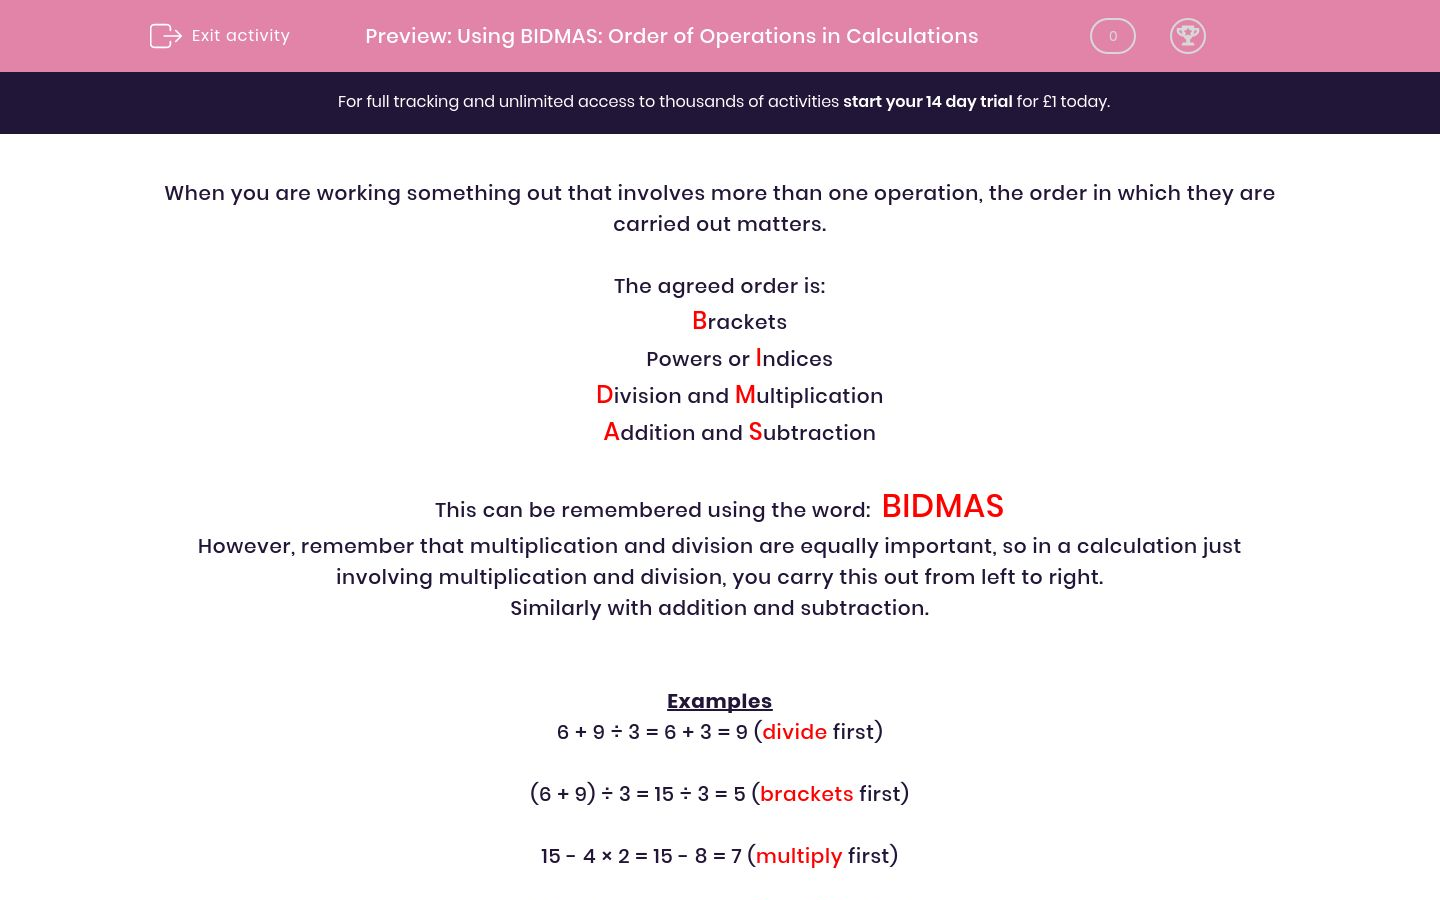 'Using BIDMAS: Order of Operations in Calculations' worksheet